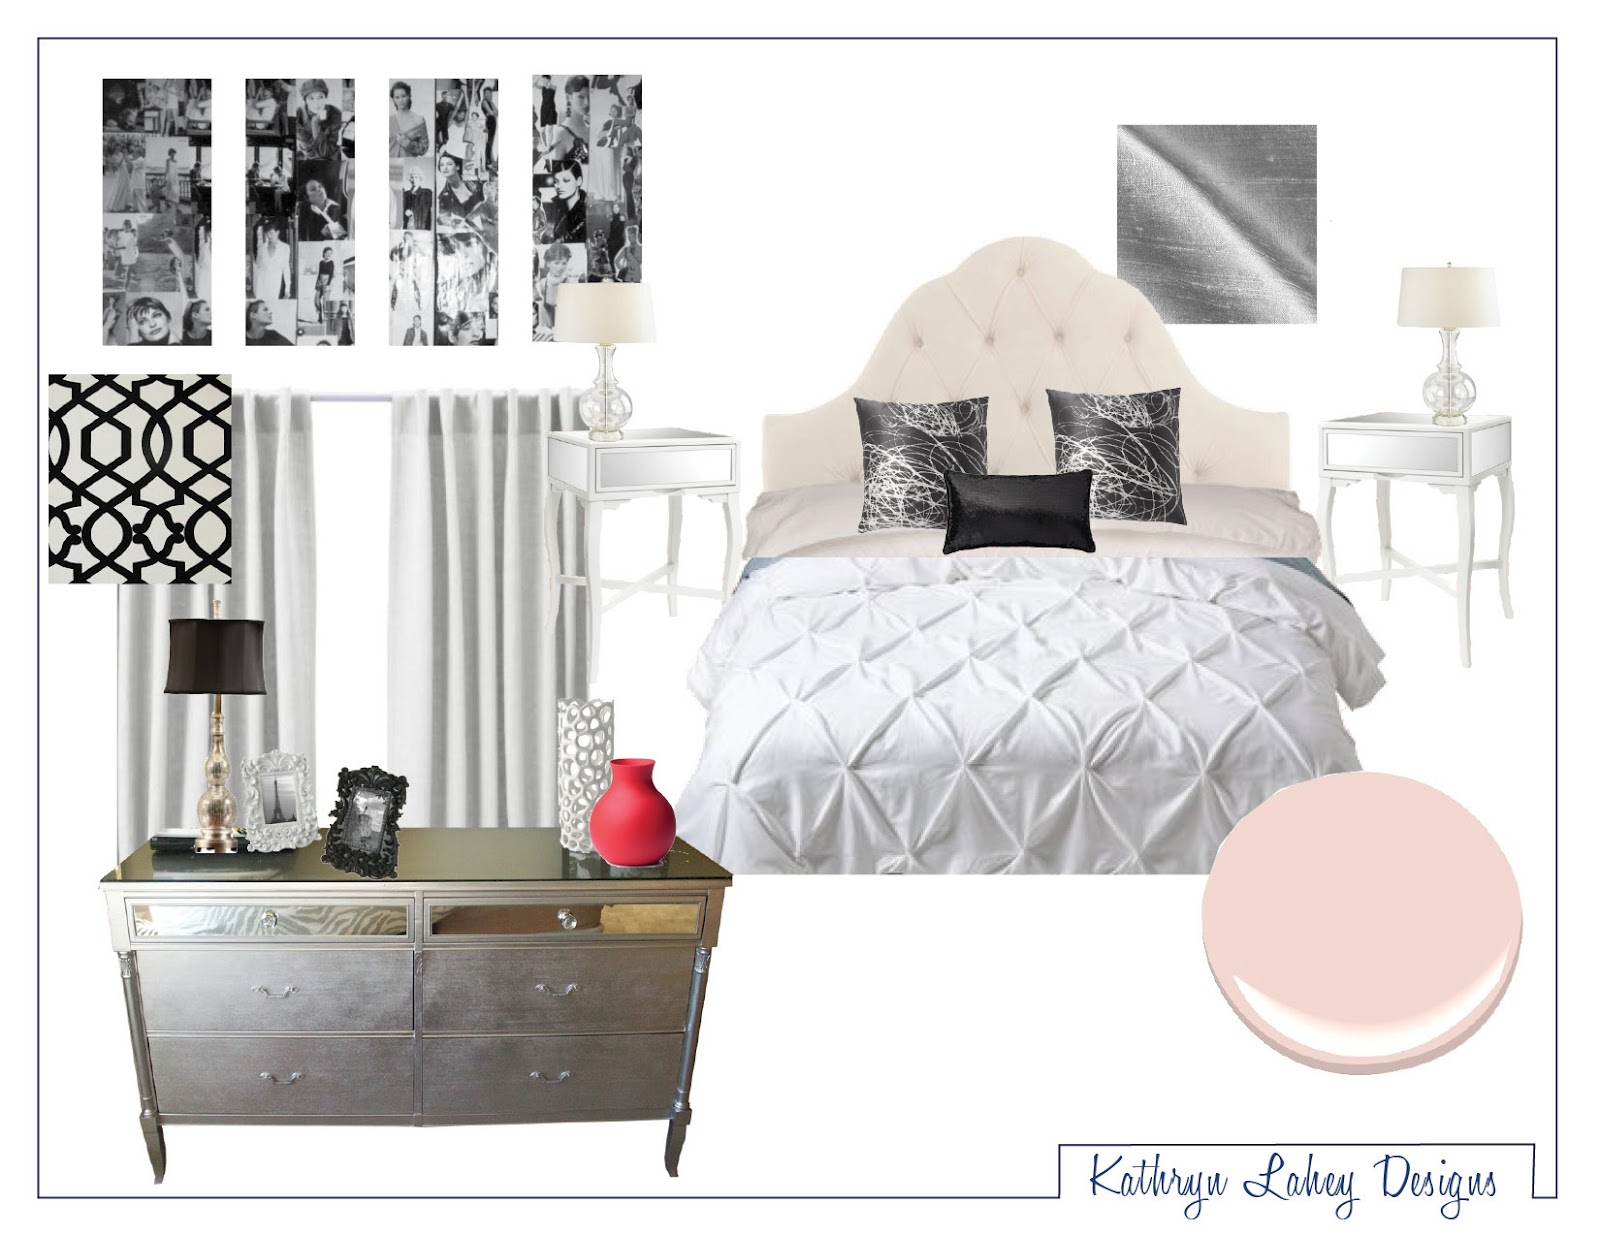 kathryn lahey designs hollywood glam mood board. Black Bedroom Furniture Sets. Home Design Ideas